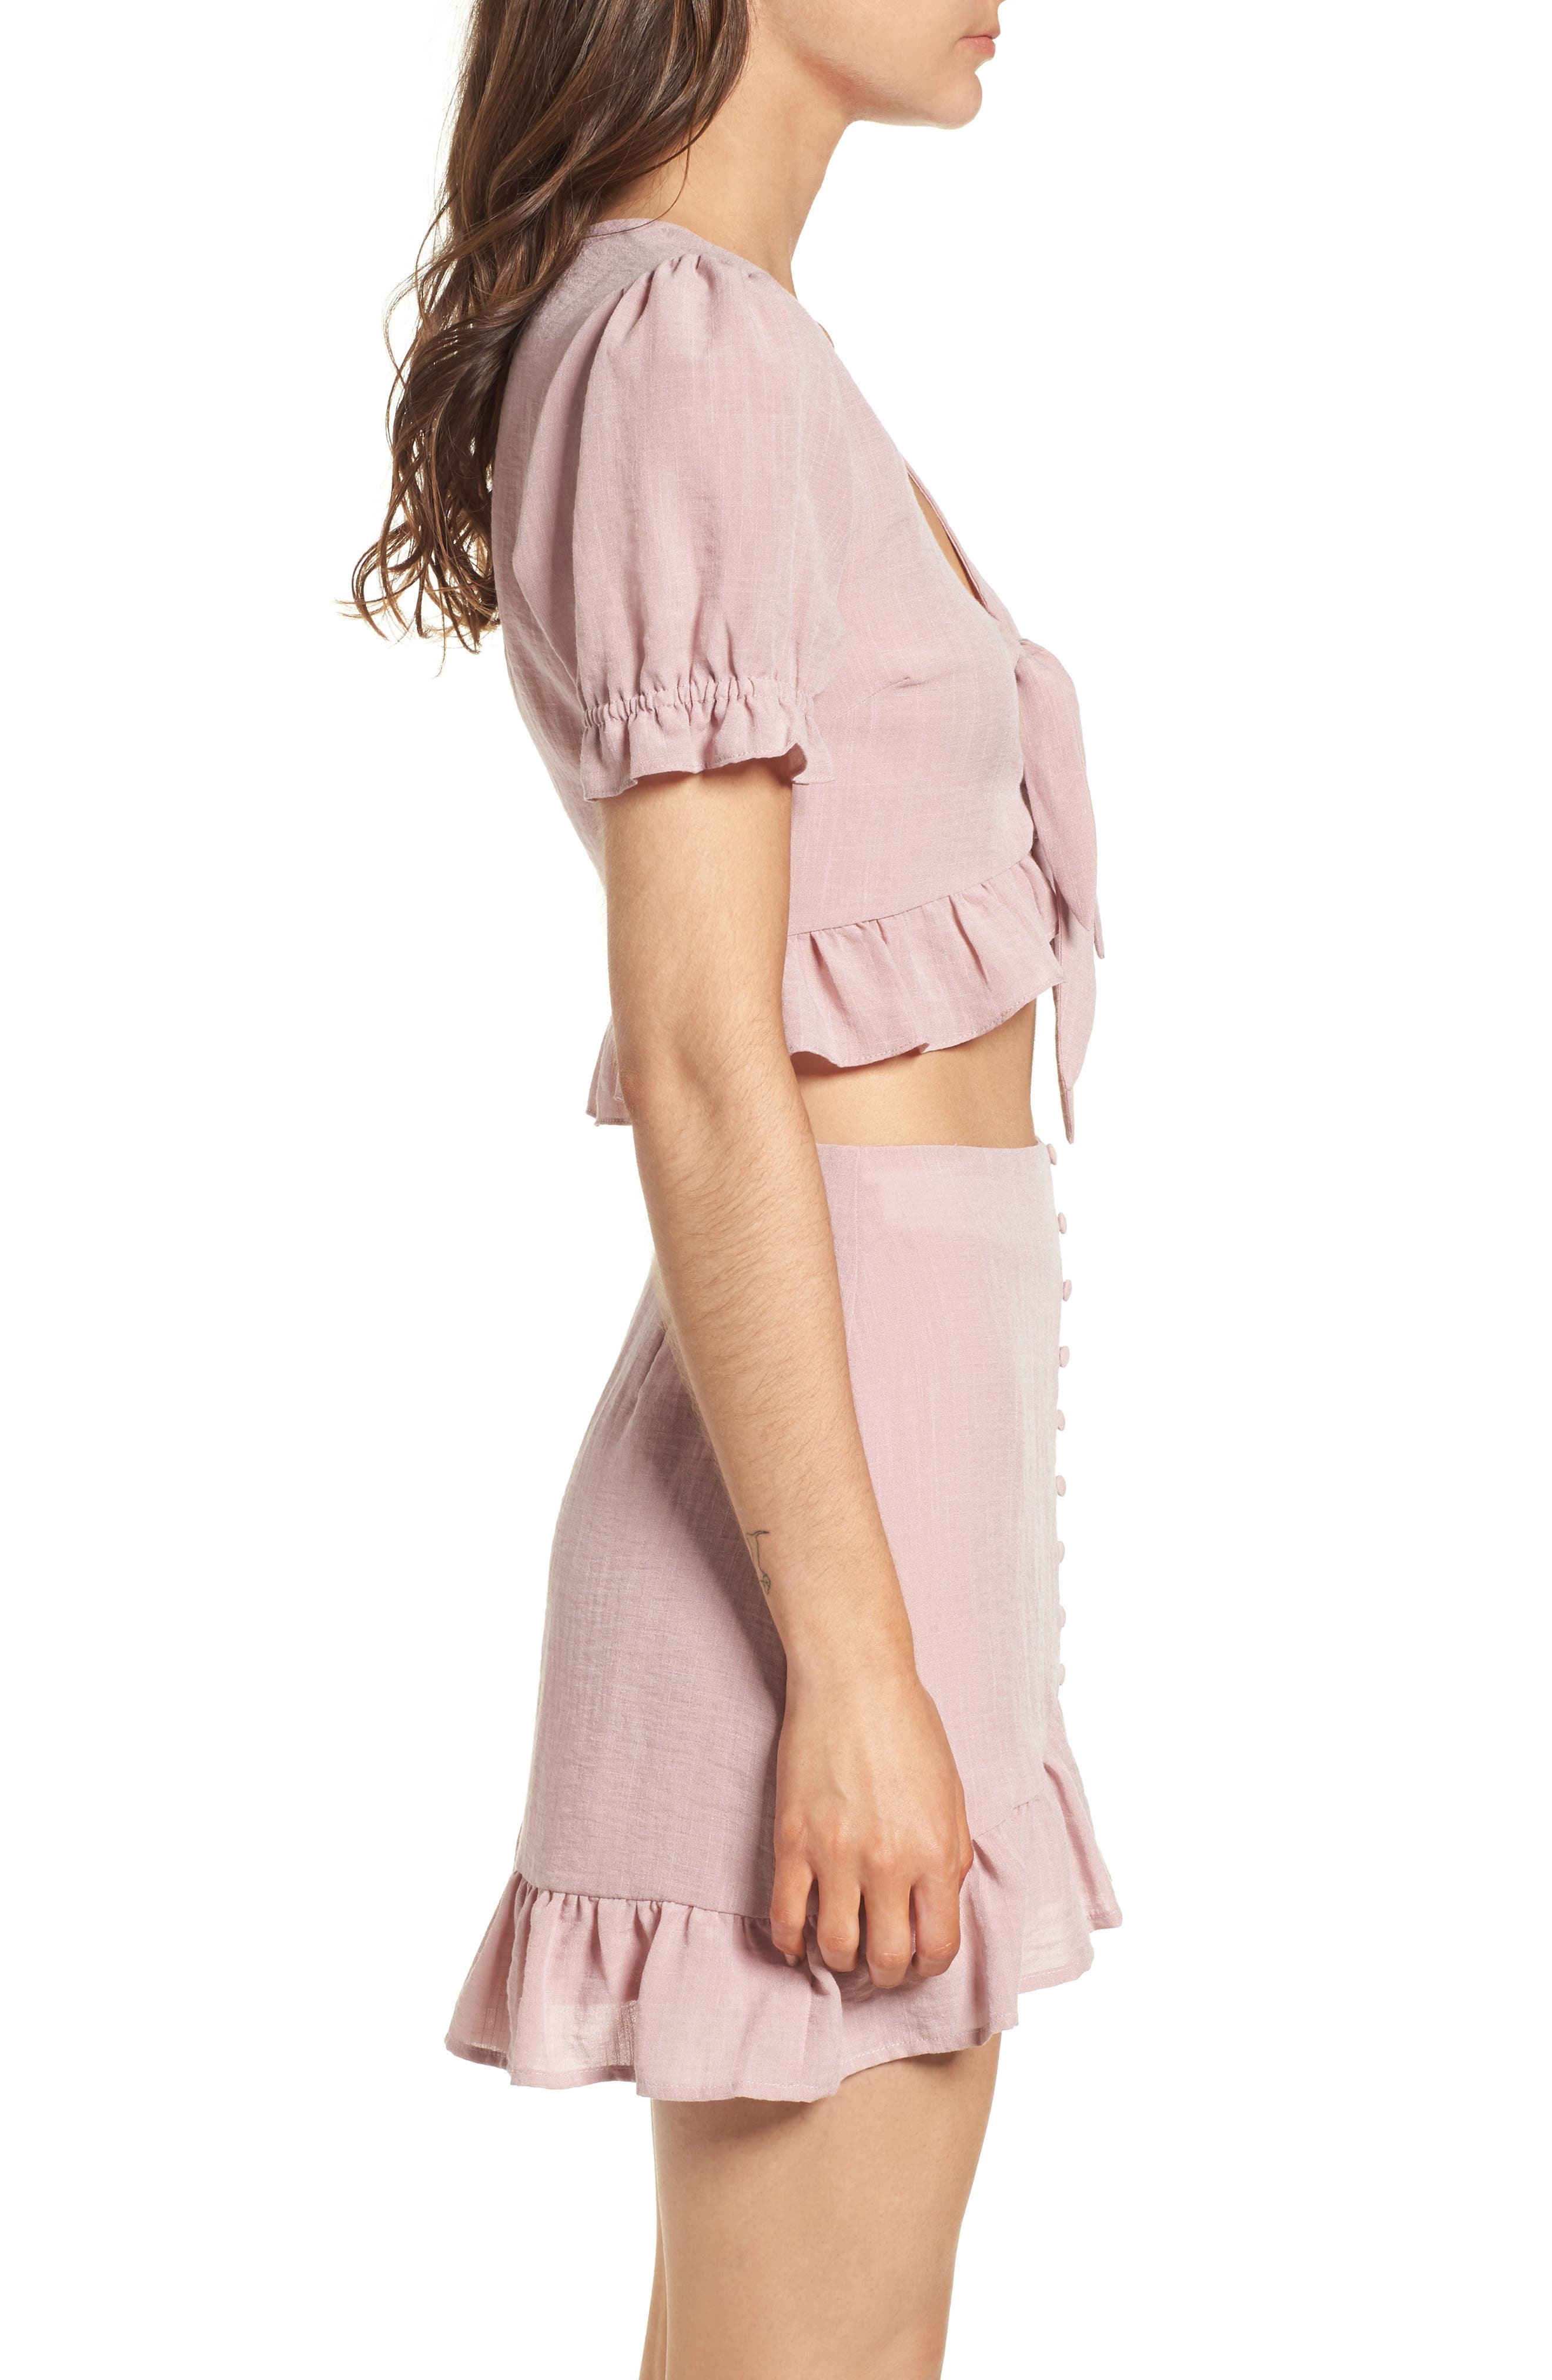 LOST + WANDER, Peony Ruffle Tie Front Crop Top, Alternate thumbnail 3, color, 681